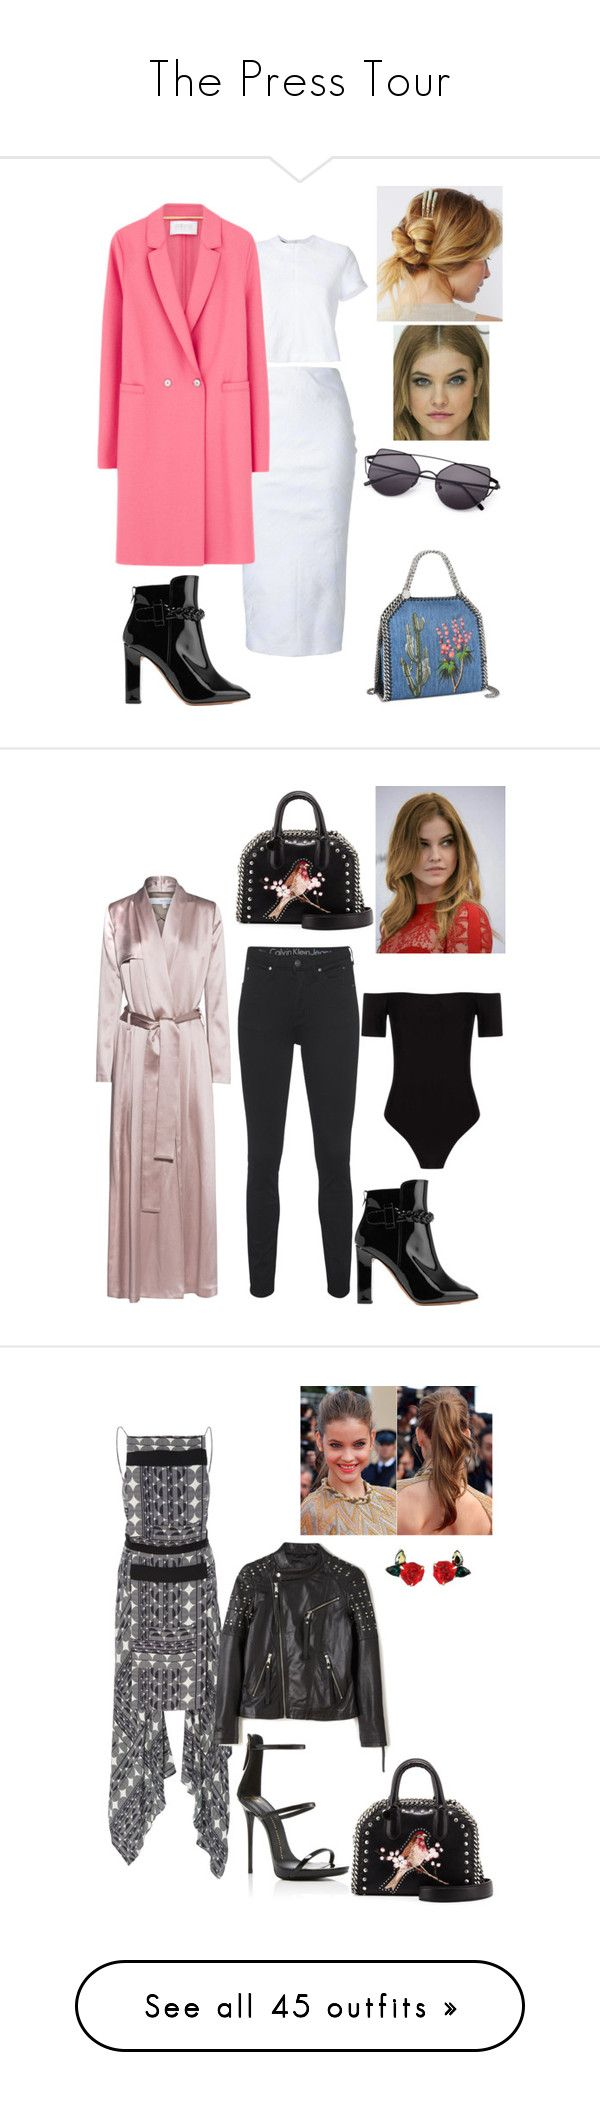 """""""The Press Tour"""" by tynabrookler ❤ liked on Polyvore featuring airport, premiere, Pressconference, ThePressTour, Valentino, Free People, Alex Perry, Harris Wharf London, STELLA McCARTNEY and Calvin Klein Jeans"""